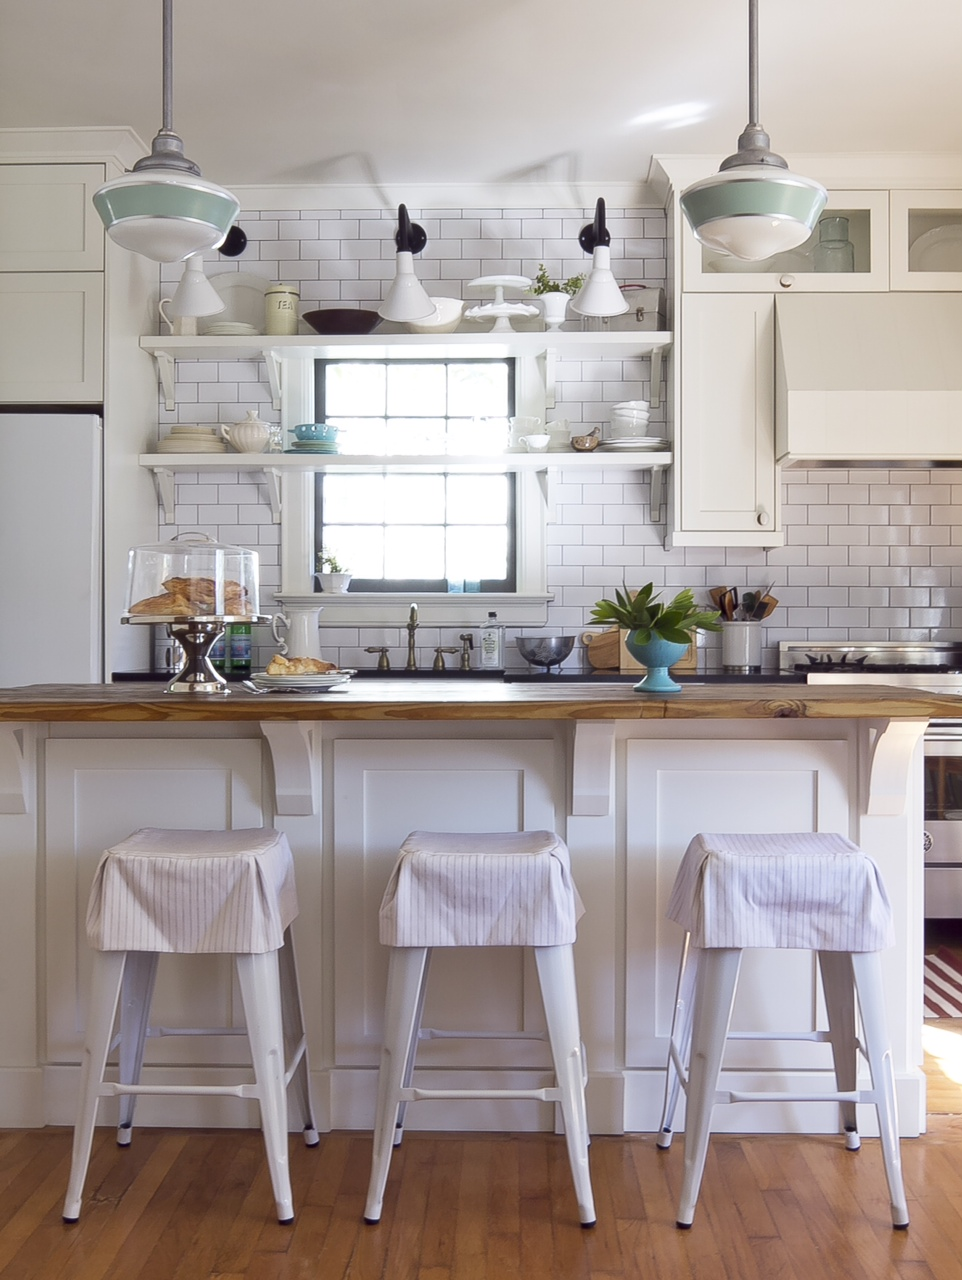 Angle shades a risky rewarding choice for decatur kitchen for Farmhouse style kitchen lighting